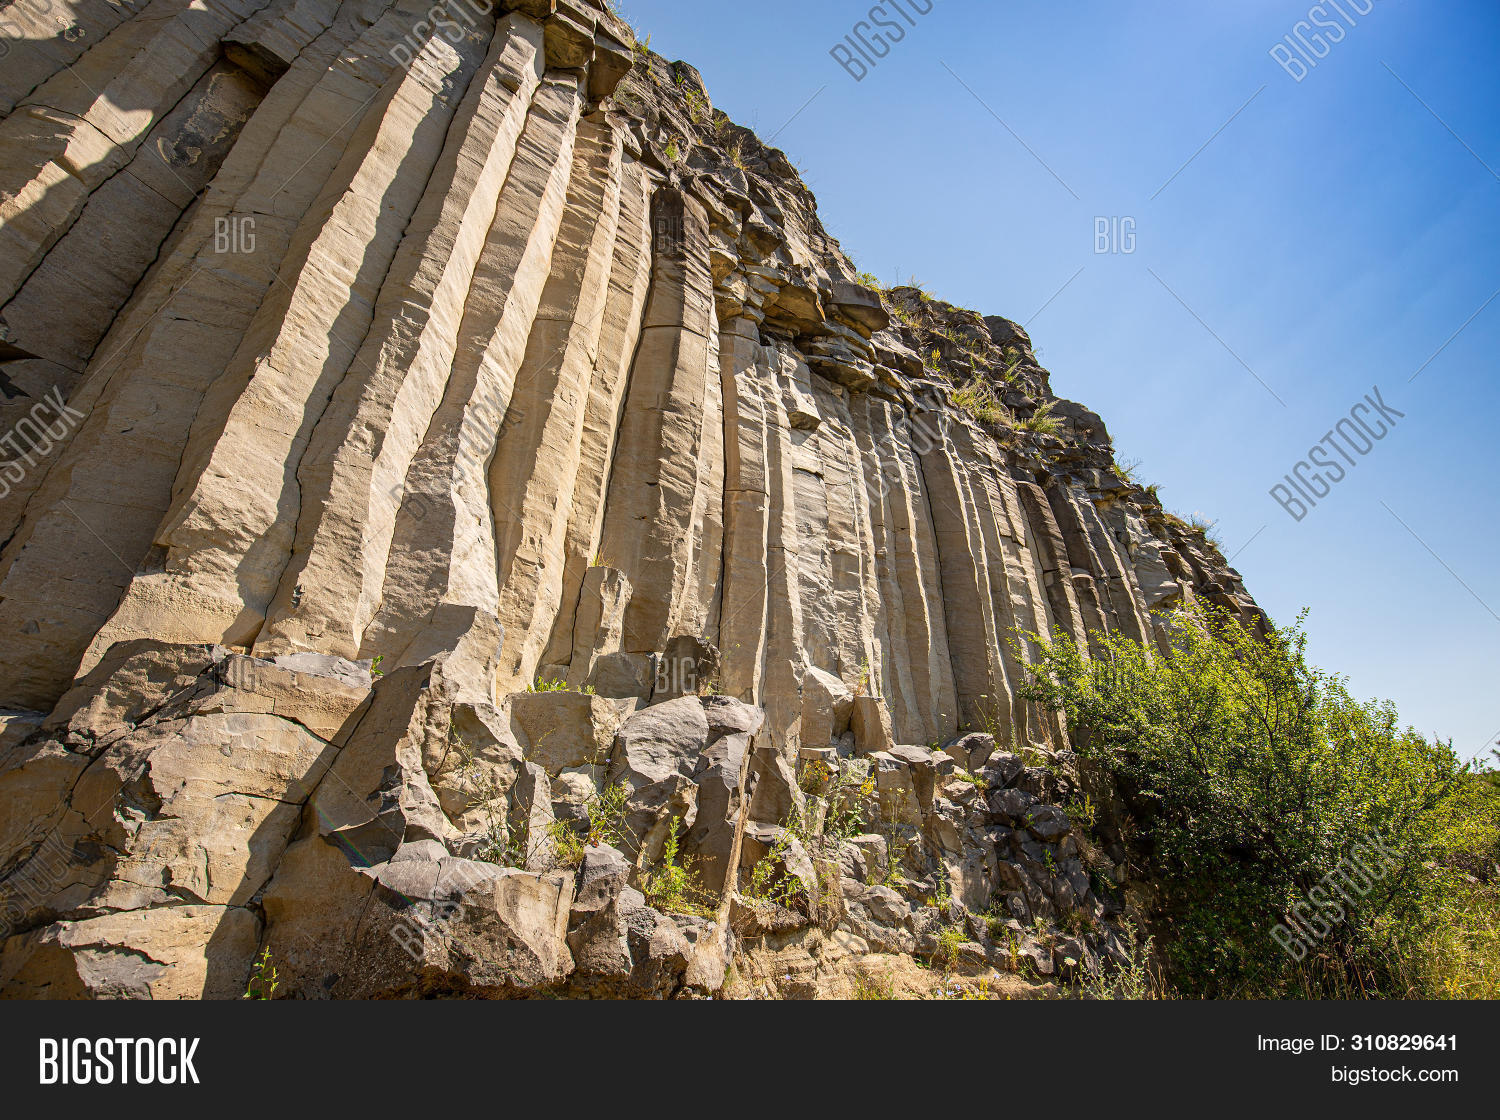 abstract,background,basalt,column,cooling,detail,formation,geology,grey,landscape,lava,material,monument,mountain,natural,nature,outdoor,rock,rocky,stone,structure